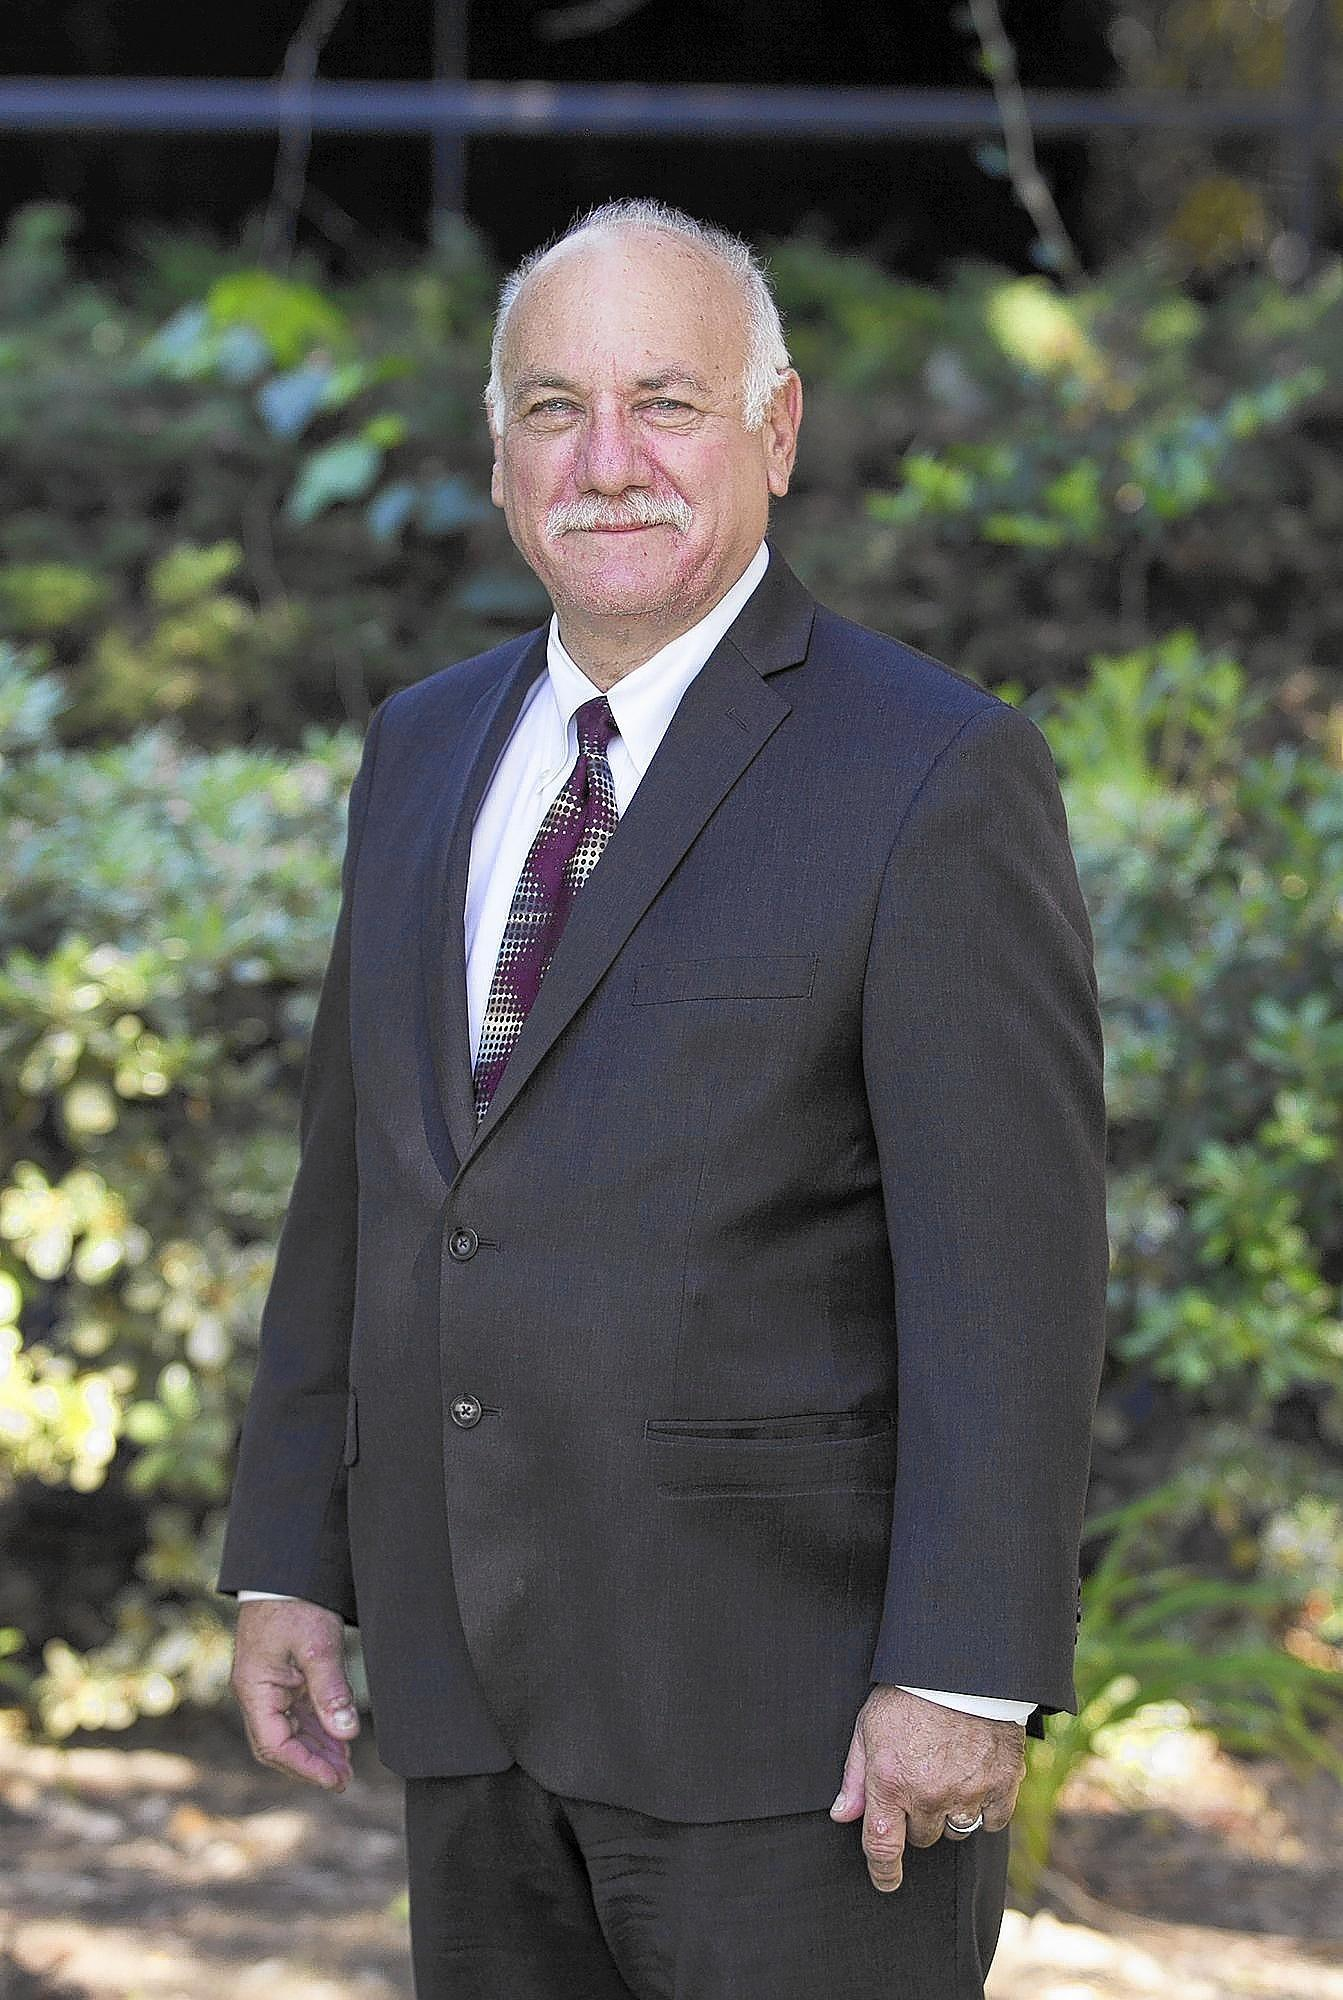 Harold Weitzberg is running for the Costa Mesa City Council this November. Weitzberg, 64, has lived in the city since 1983.